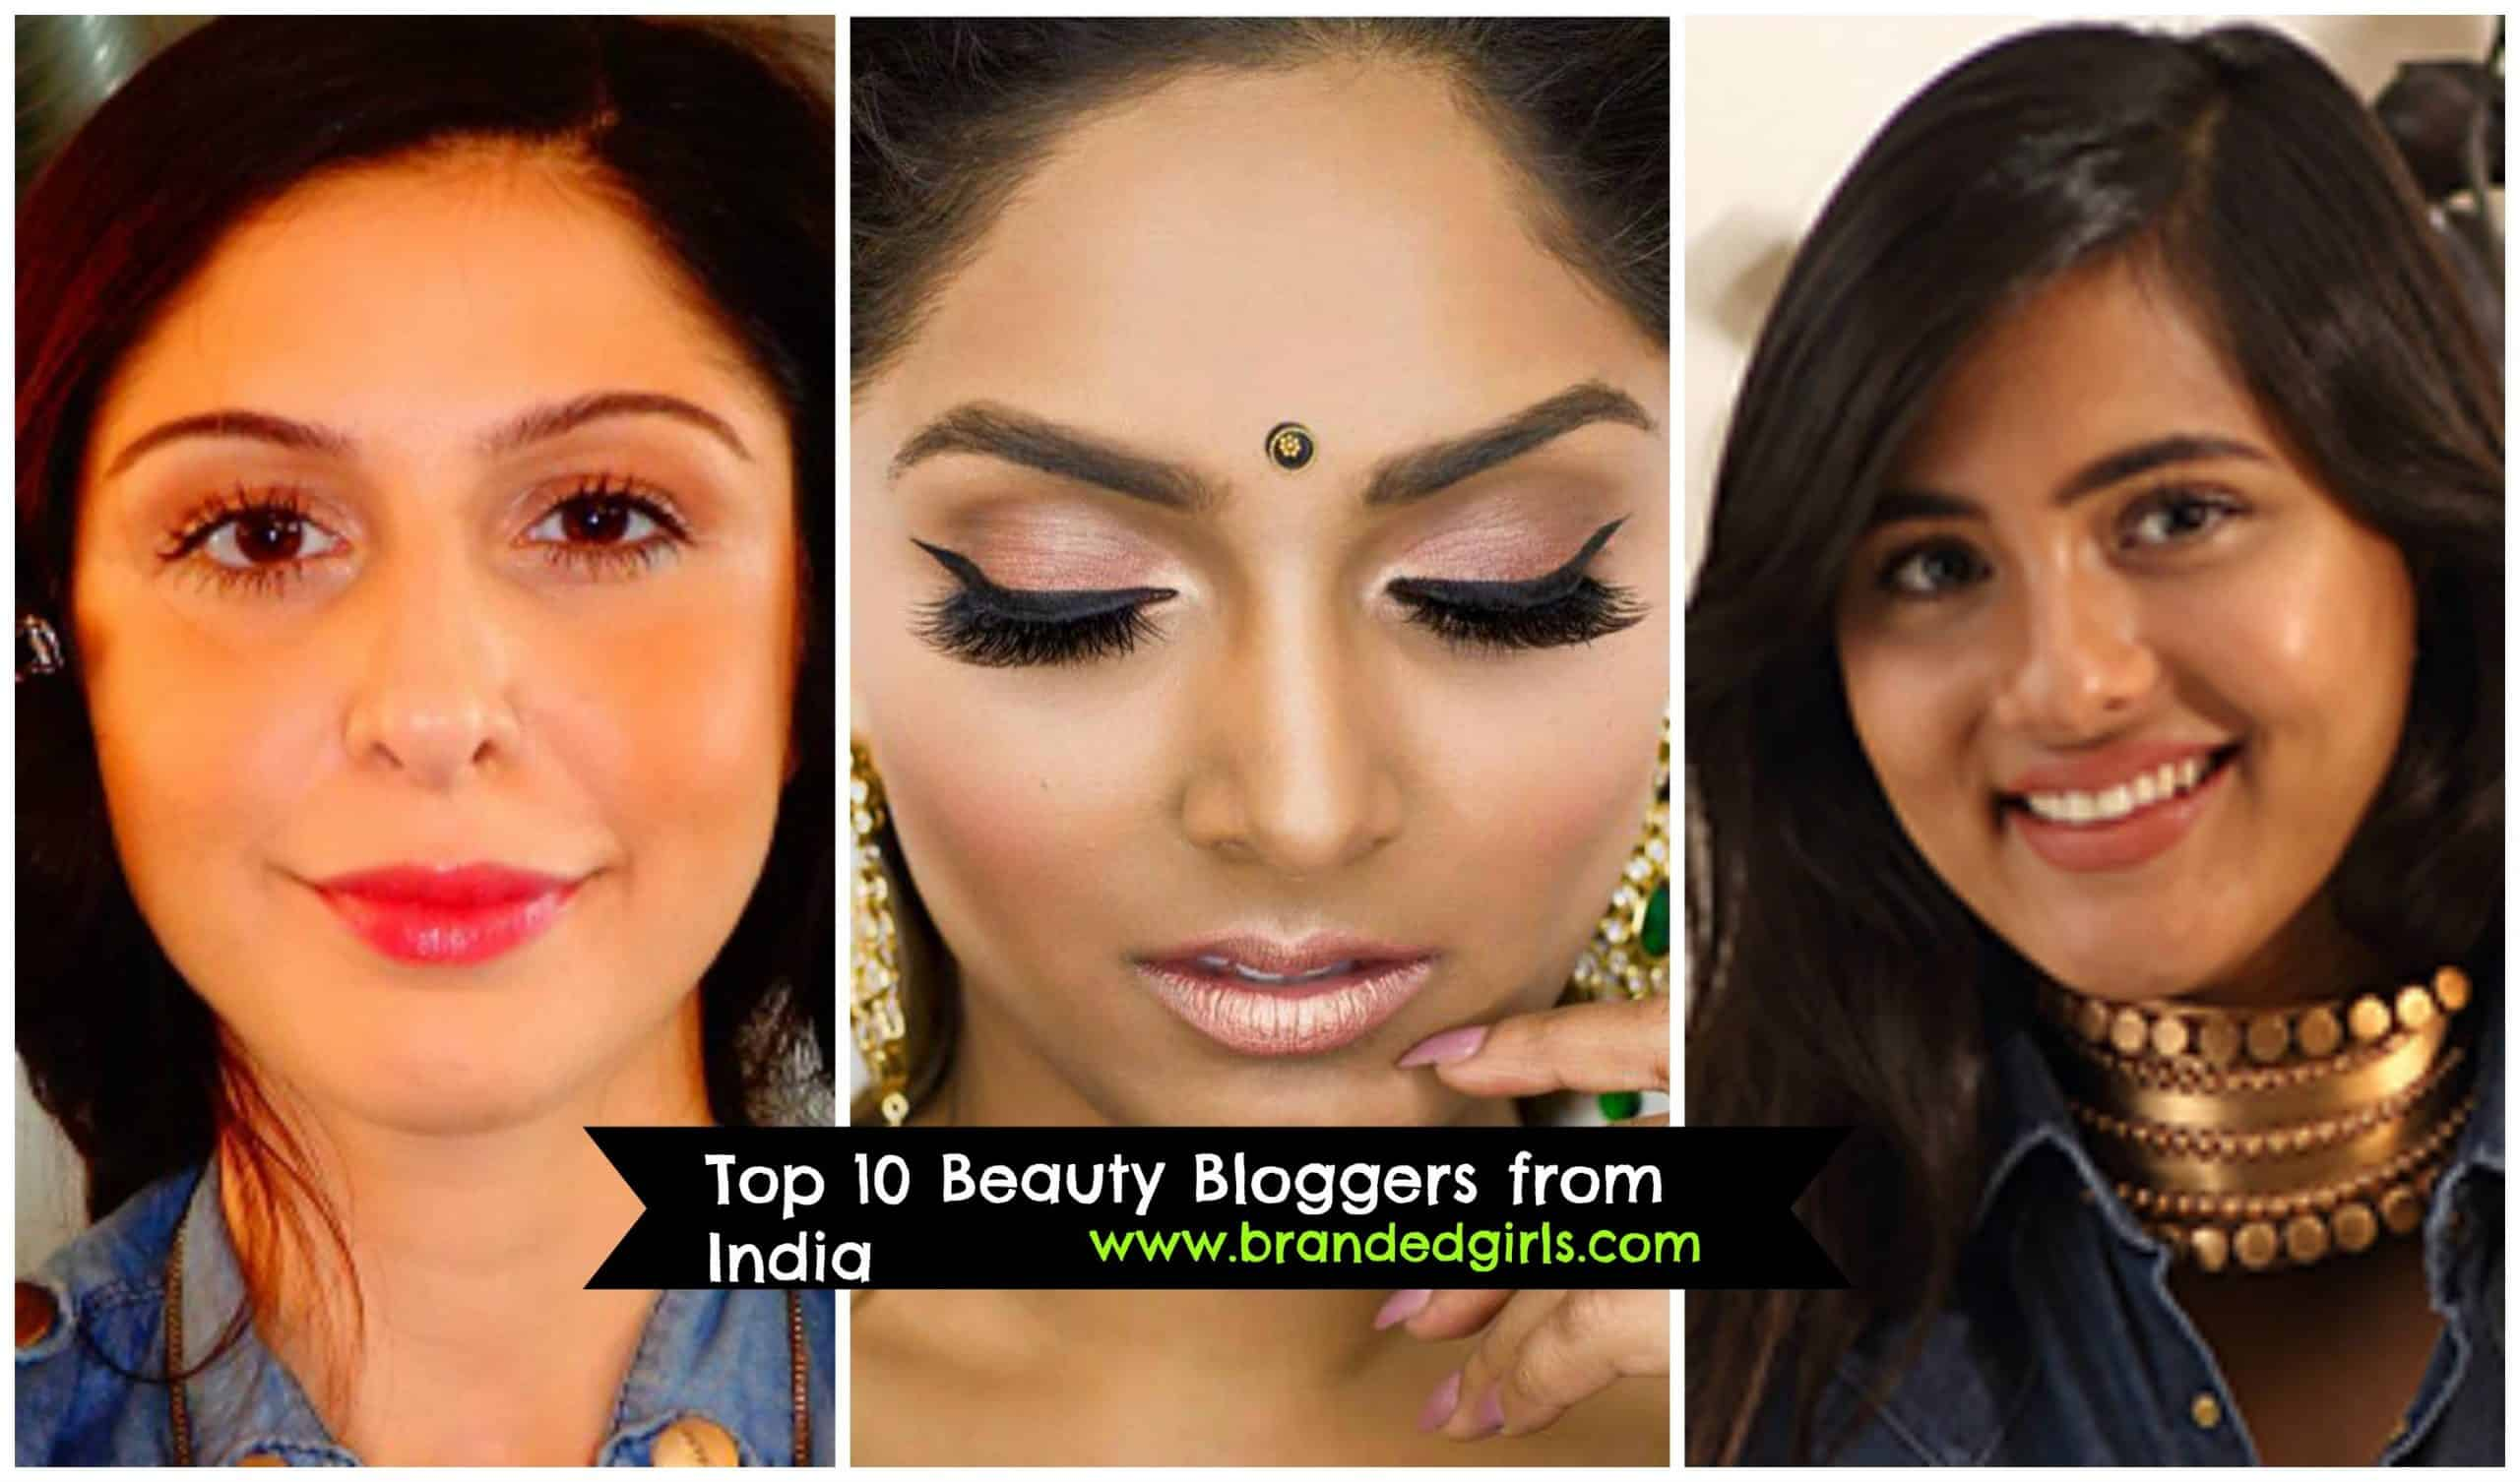 Top 10 Beauty Bloggers in India to follow 2019